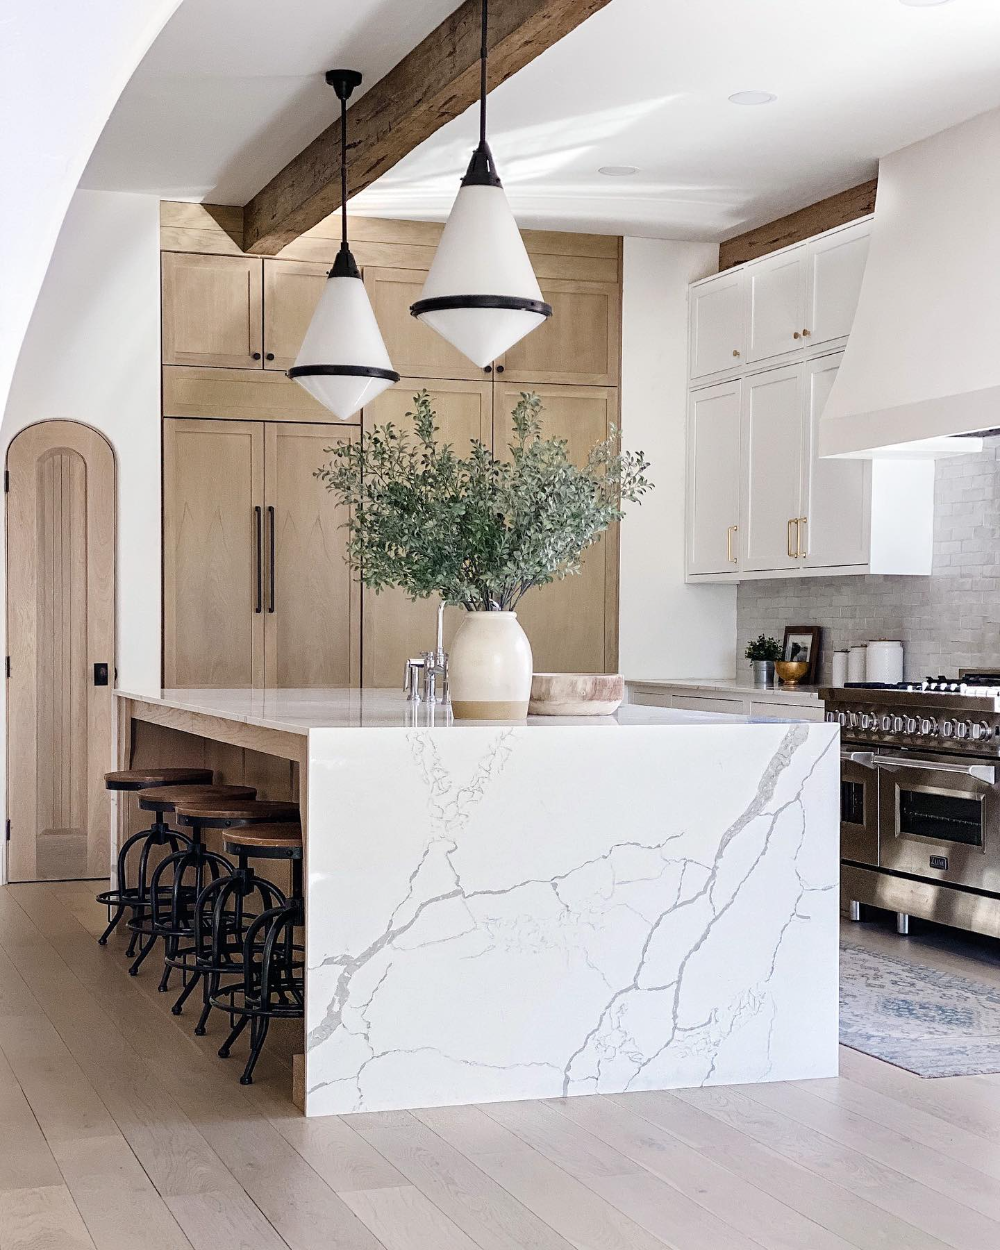 MSI Lookbook: Amazing Kitchen Counters and Tile to Inspire Your Design